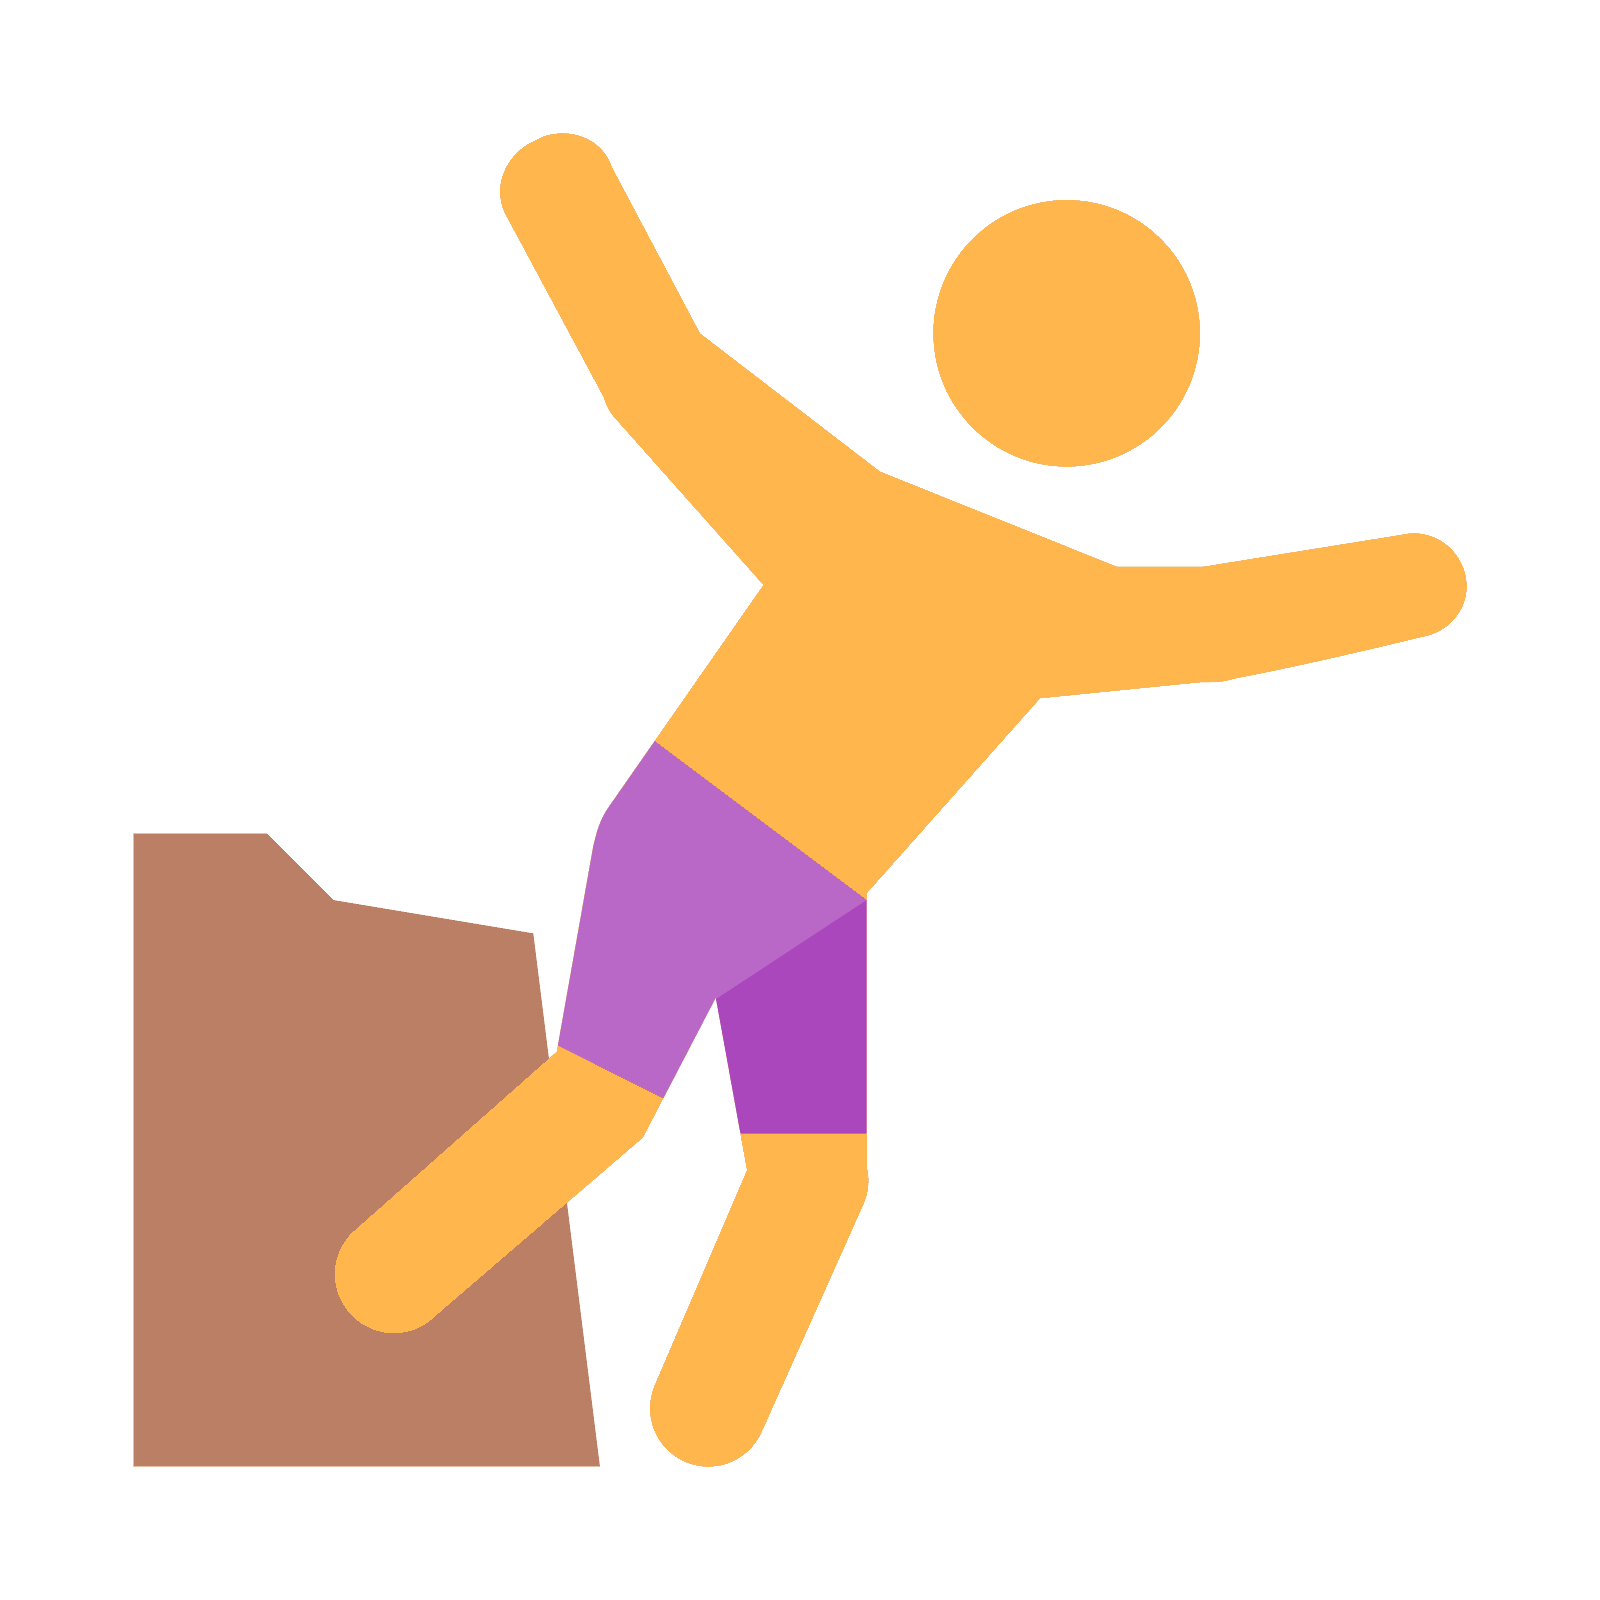 Cliff png icon. Clipart volleyball diving